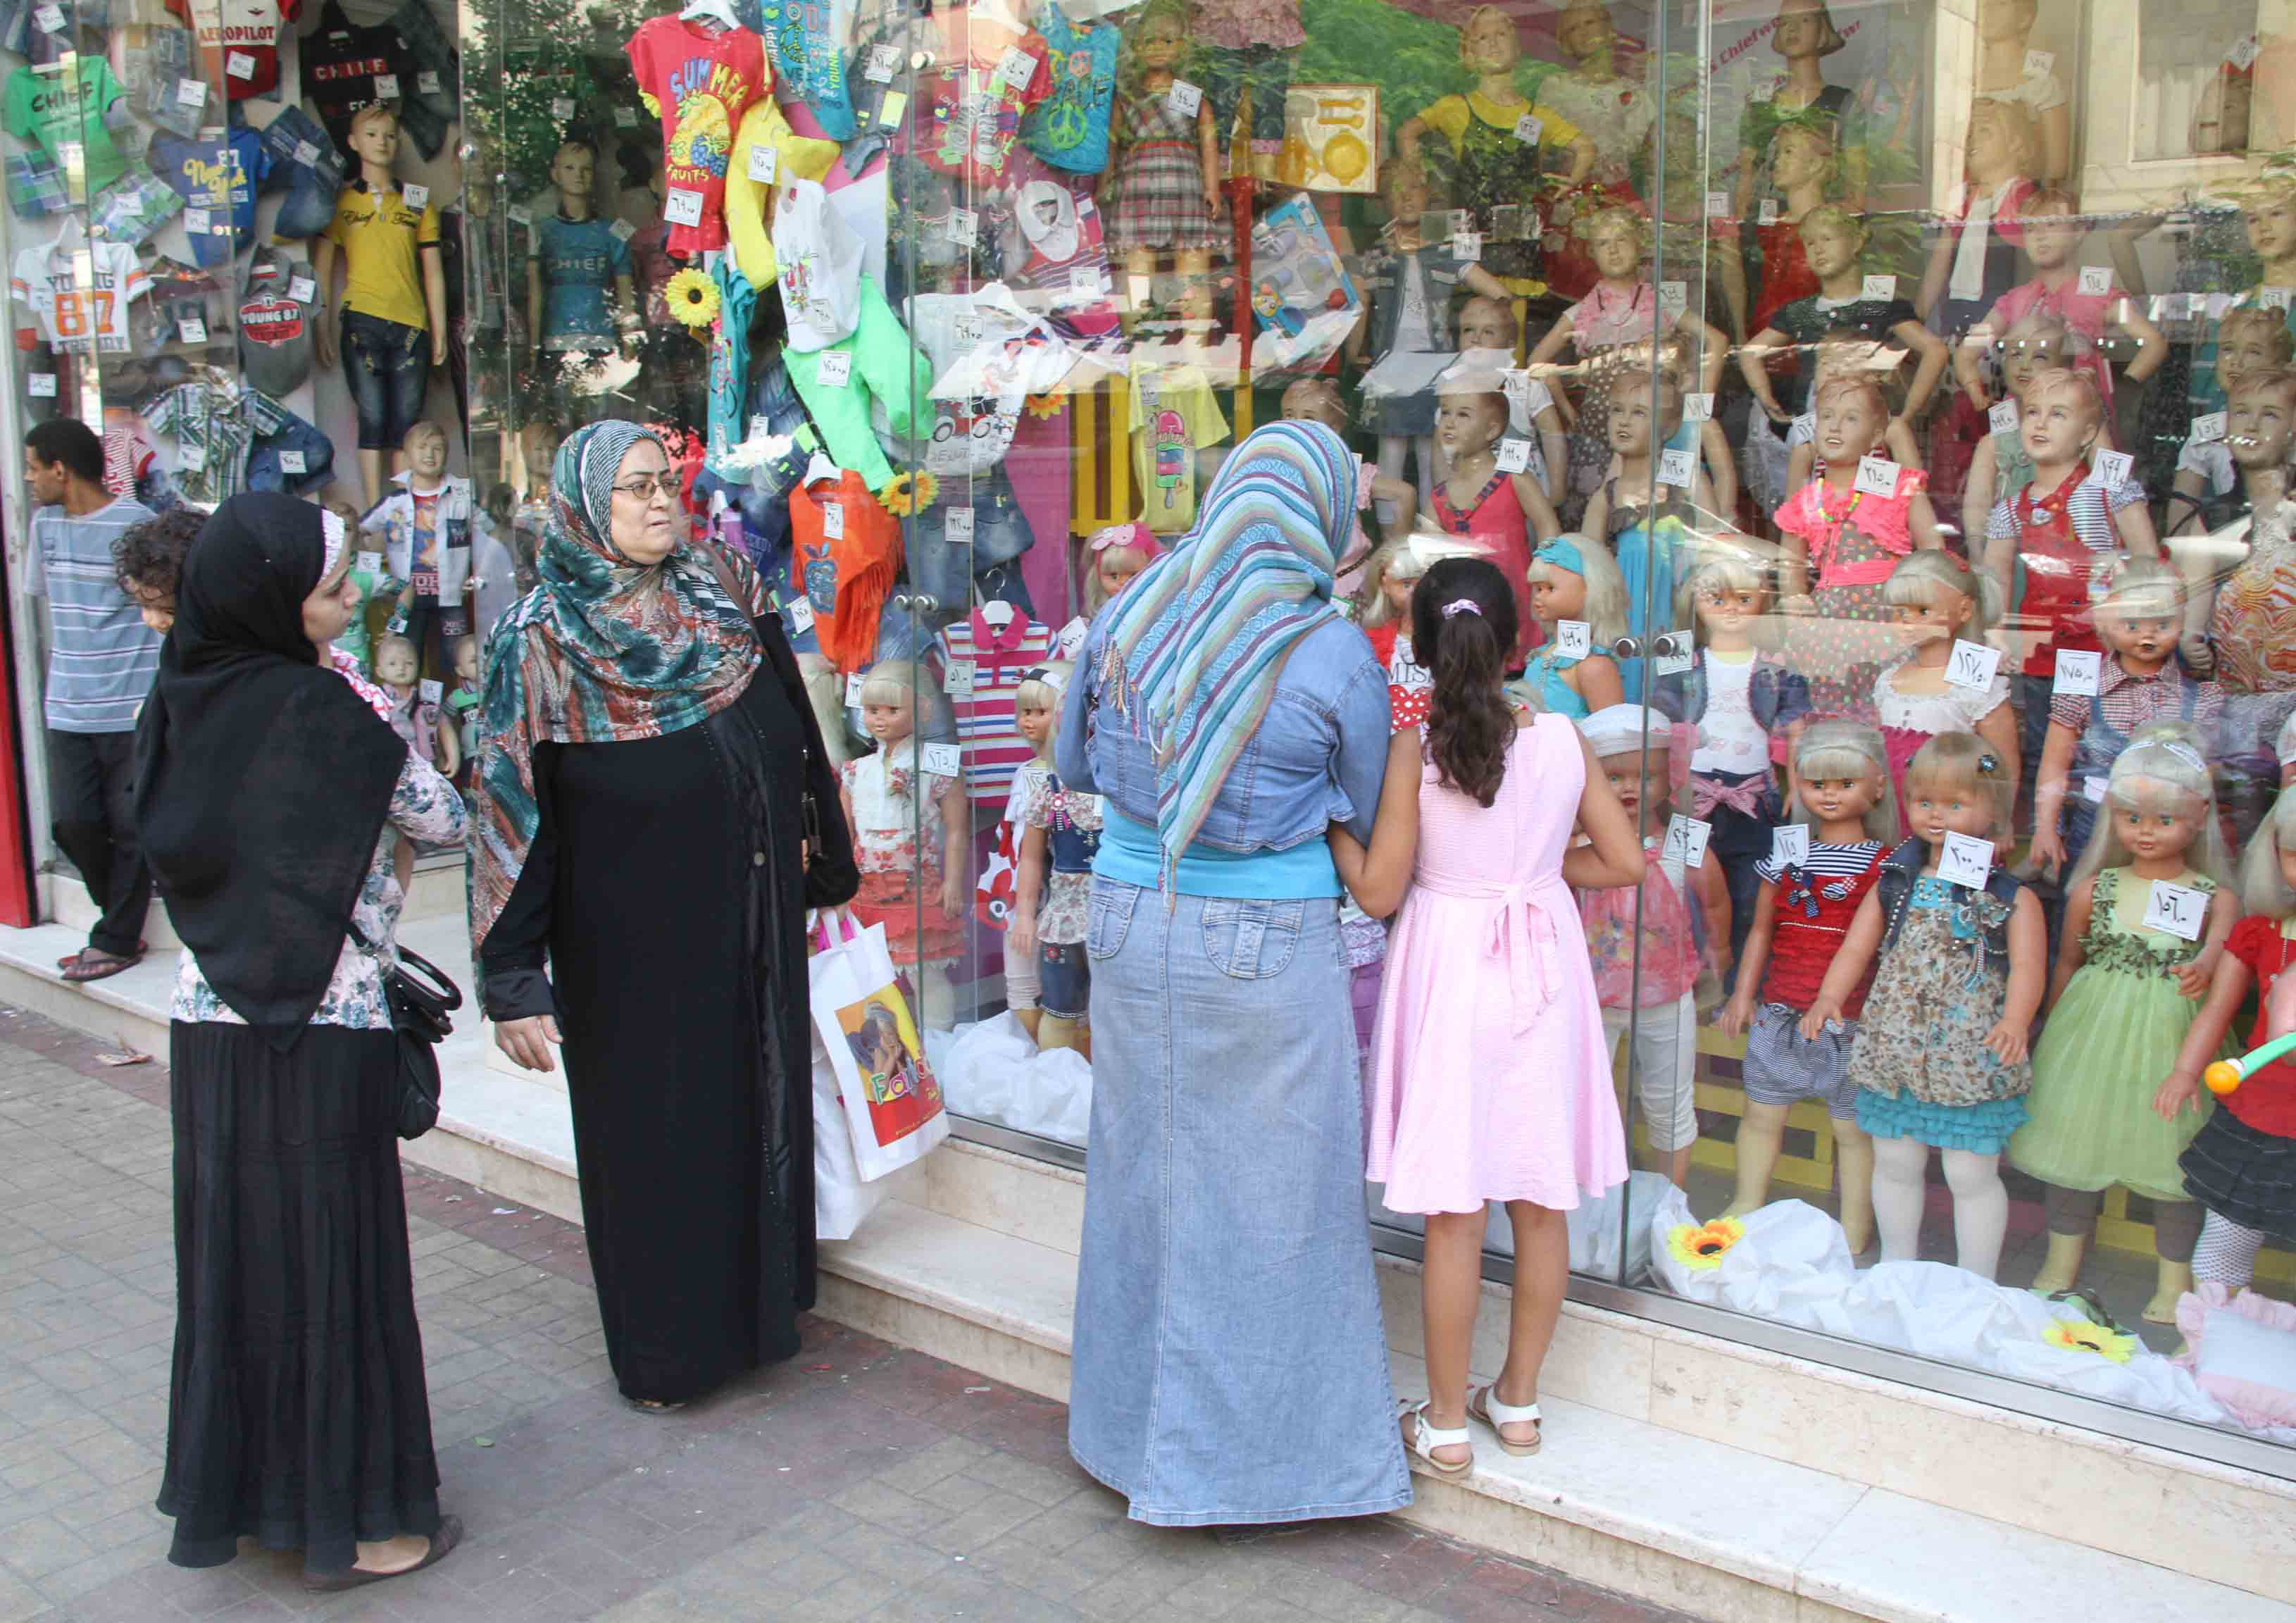 Products sold included ready-made clothes, carpets, textiles, furniture, electrical equipments, silverware, and household utensils (Photo by Ahmed Al-Malky)